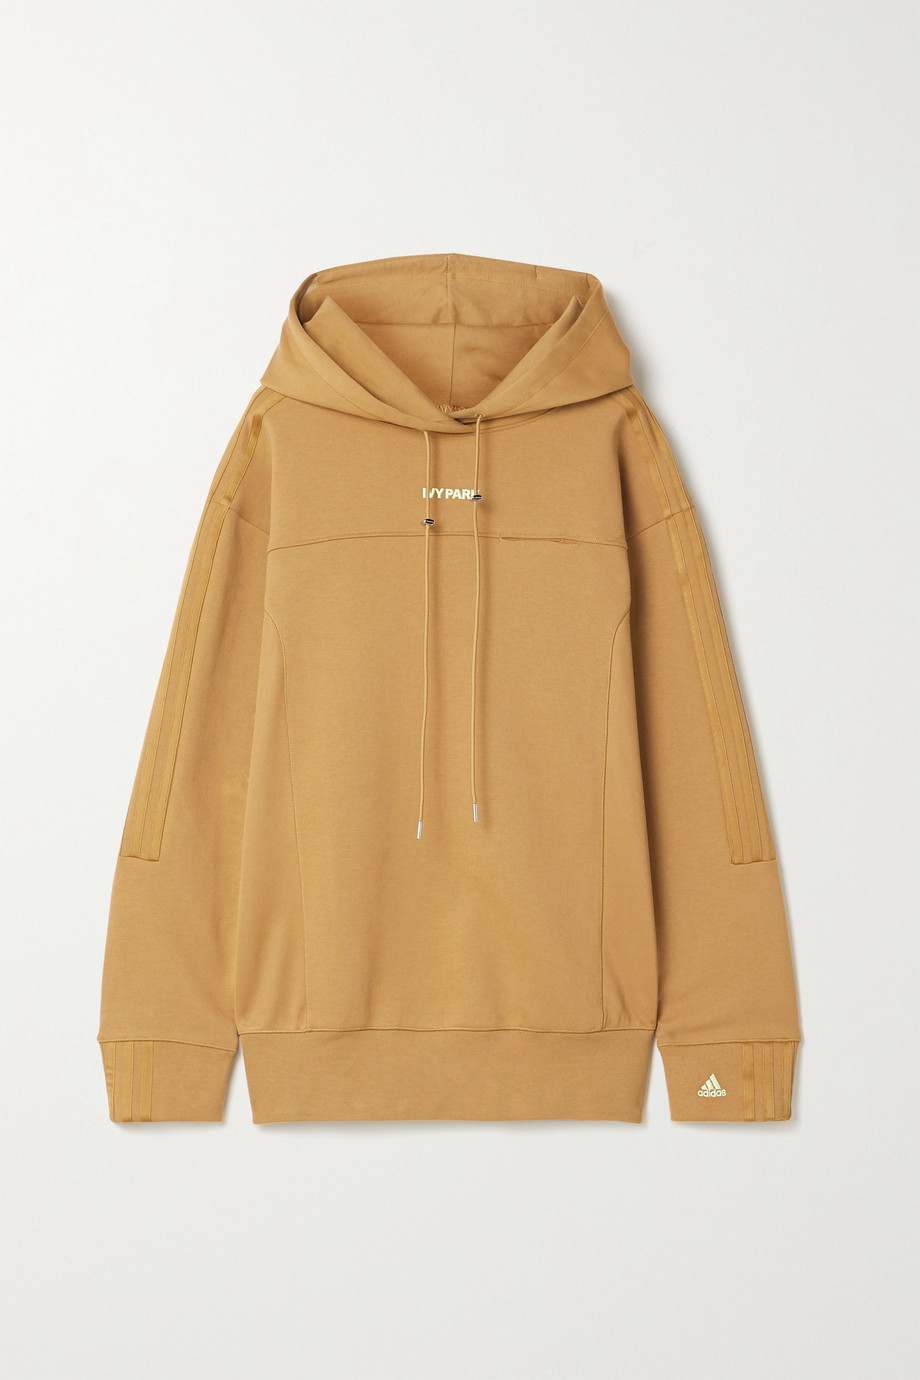 ADIDAS ORIGINALS + Ivy Park 4All satin-trimmed cotton-blend jersey and piqué hoodie